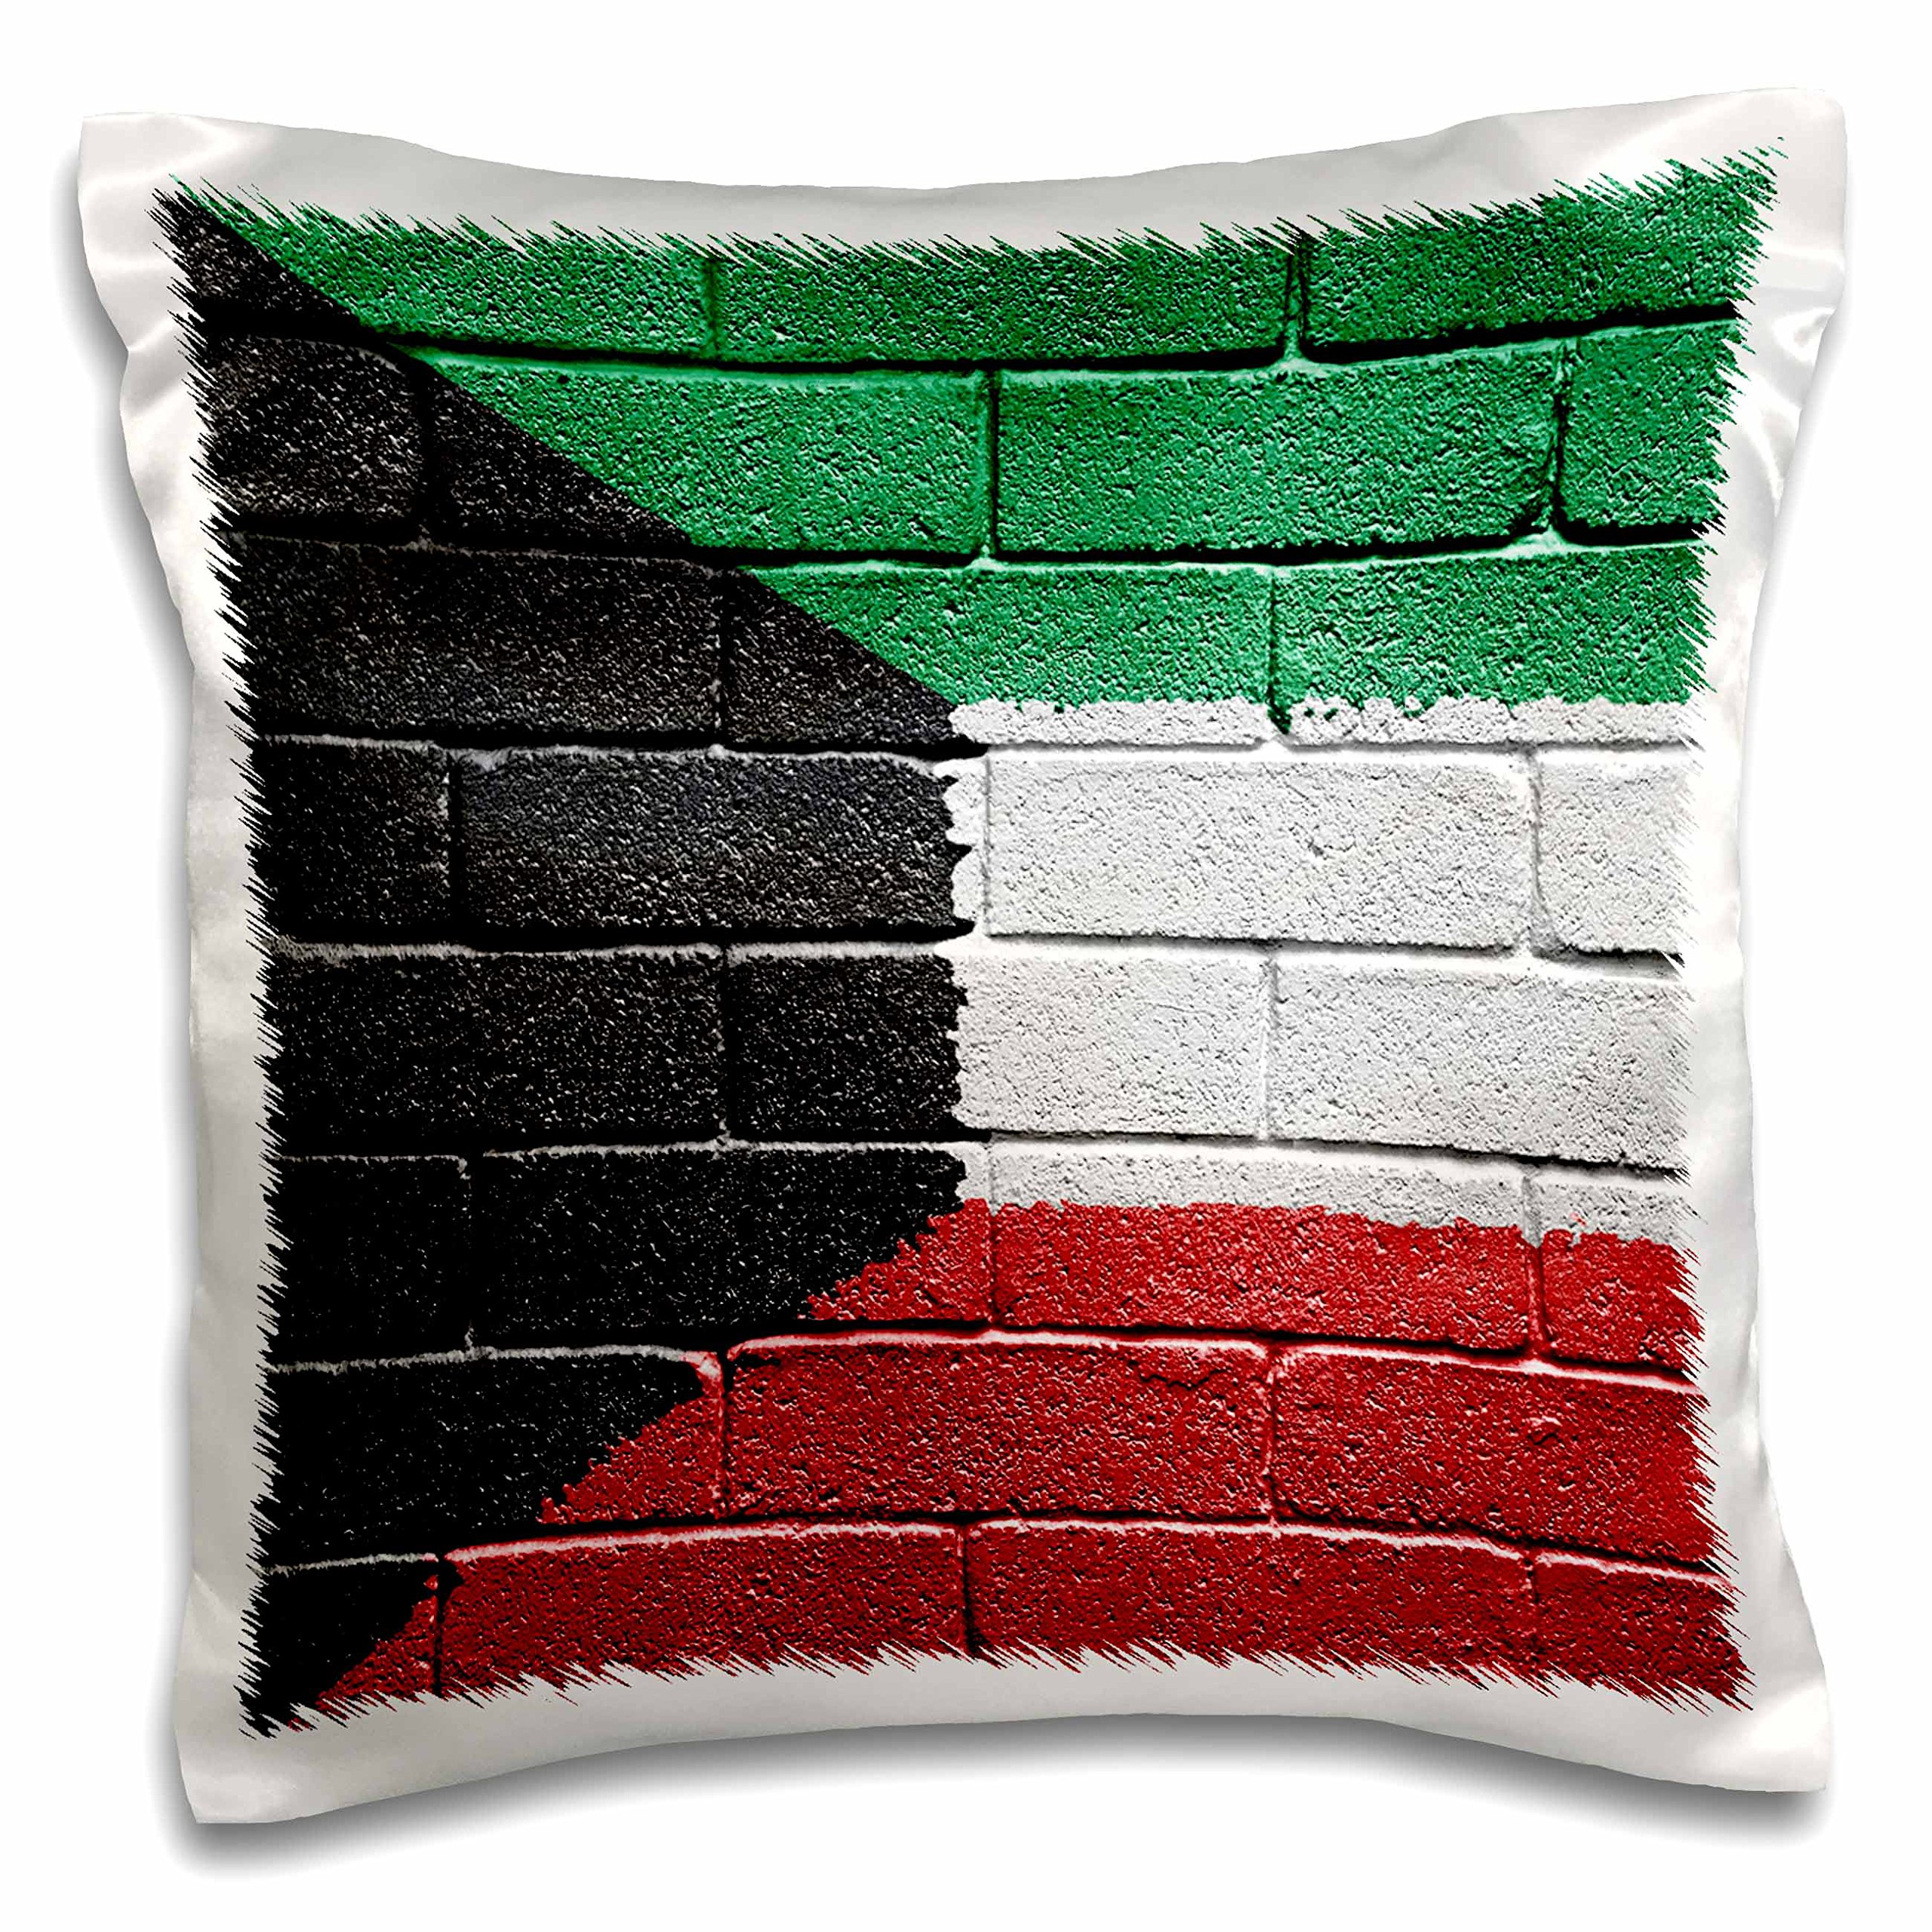 3dRose National flag of Kuwait painted onto a brick wall Kuwaiti - Pillow Case, 16 by 16-inch (pc_156919_1)